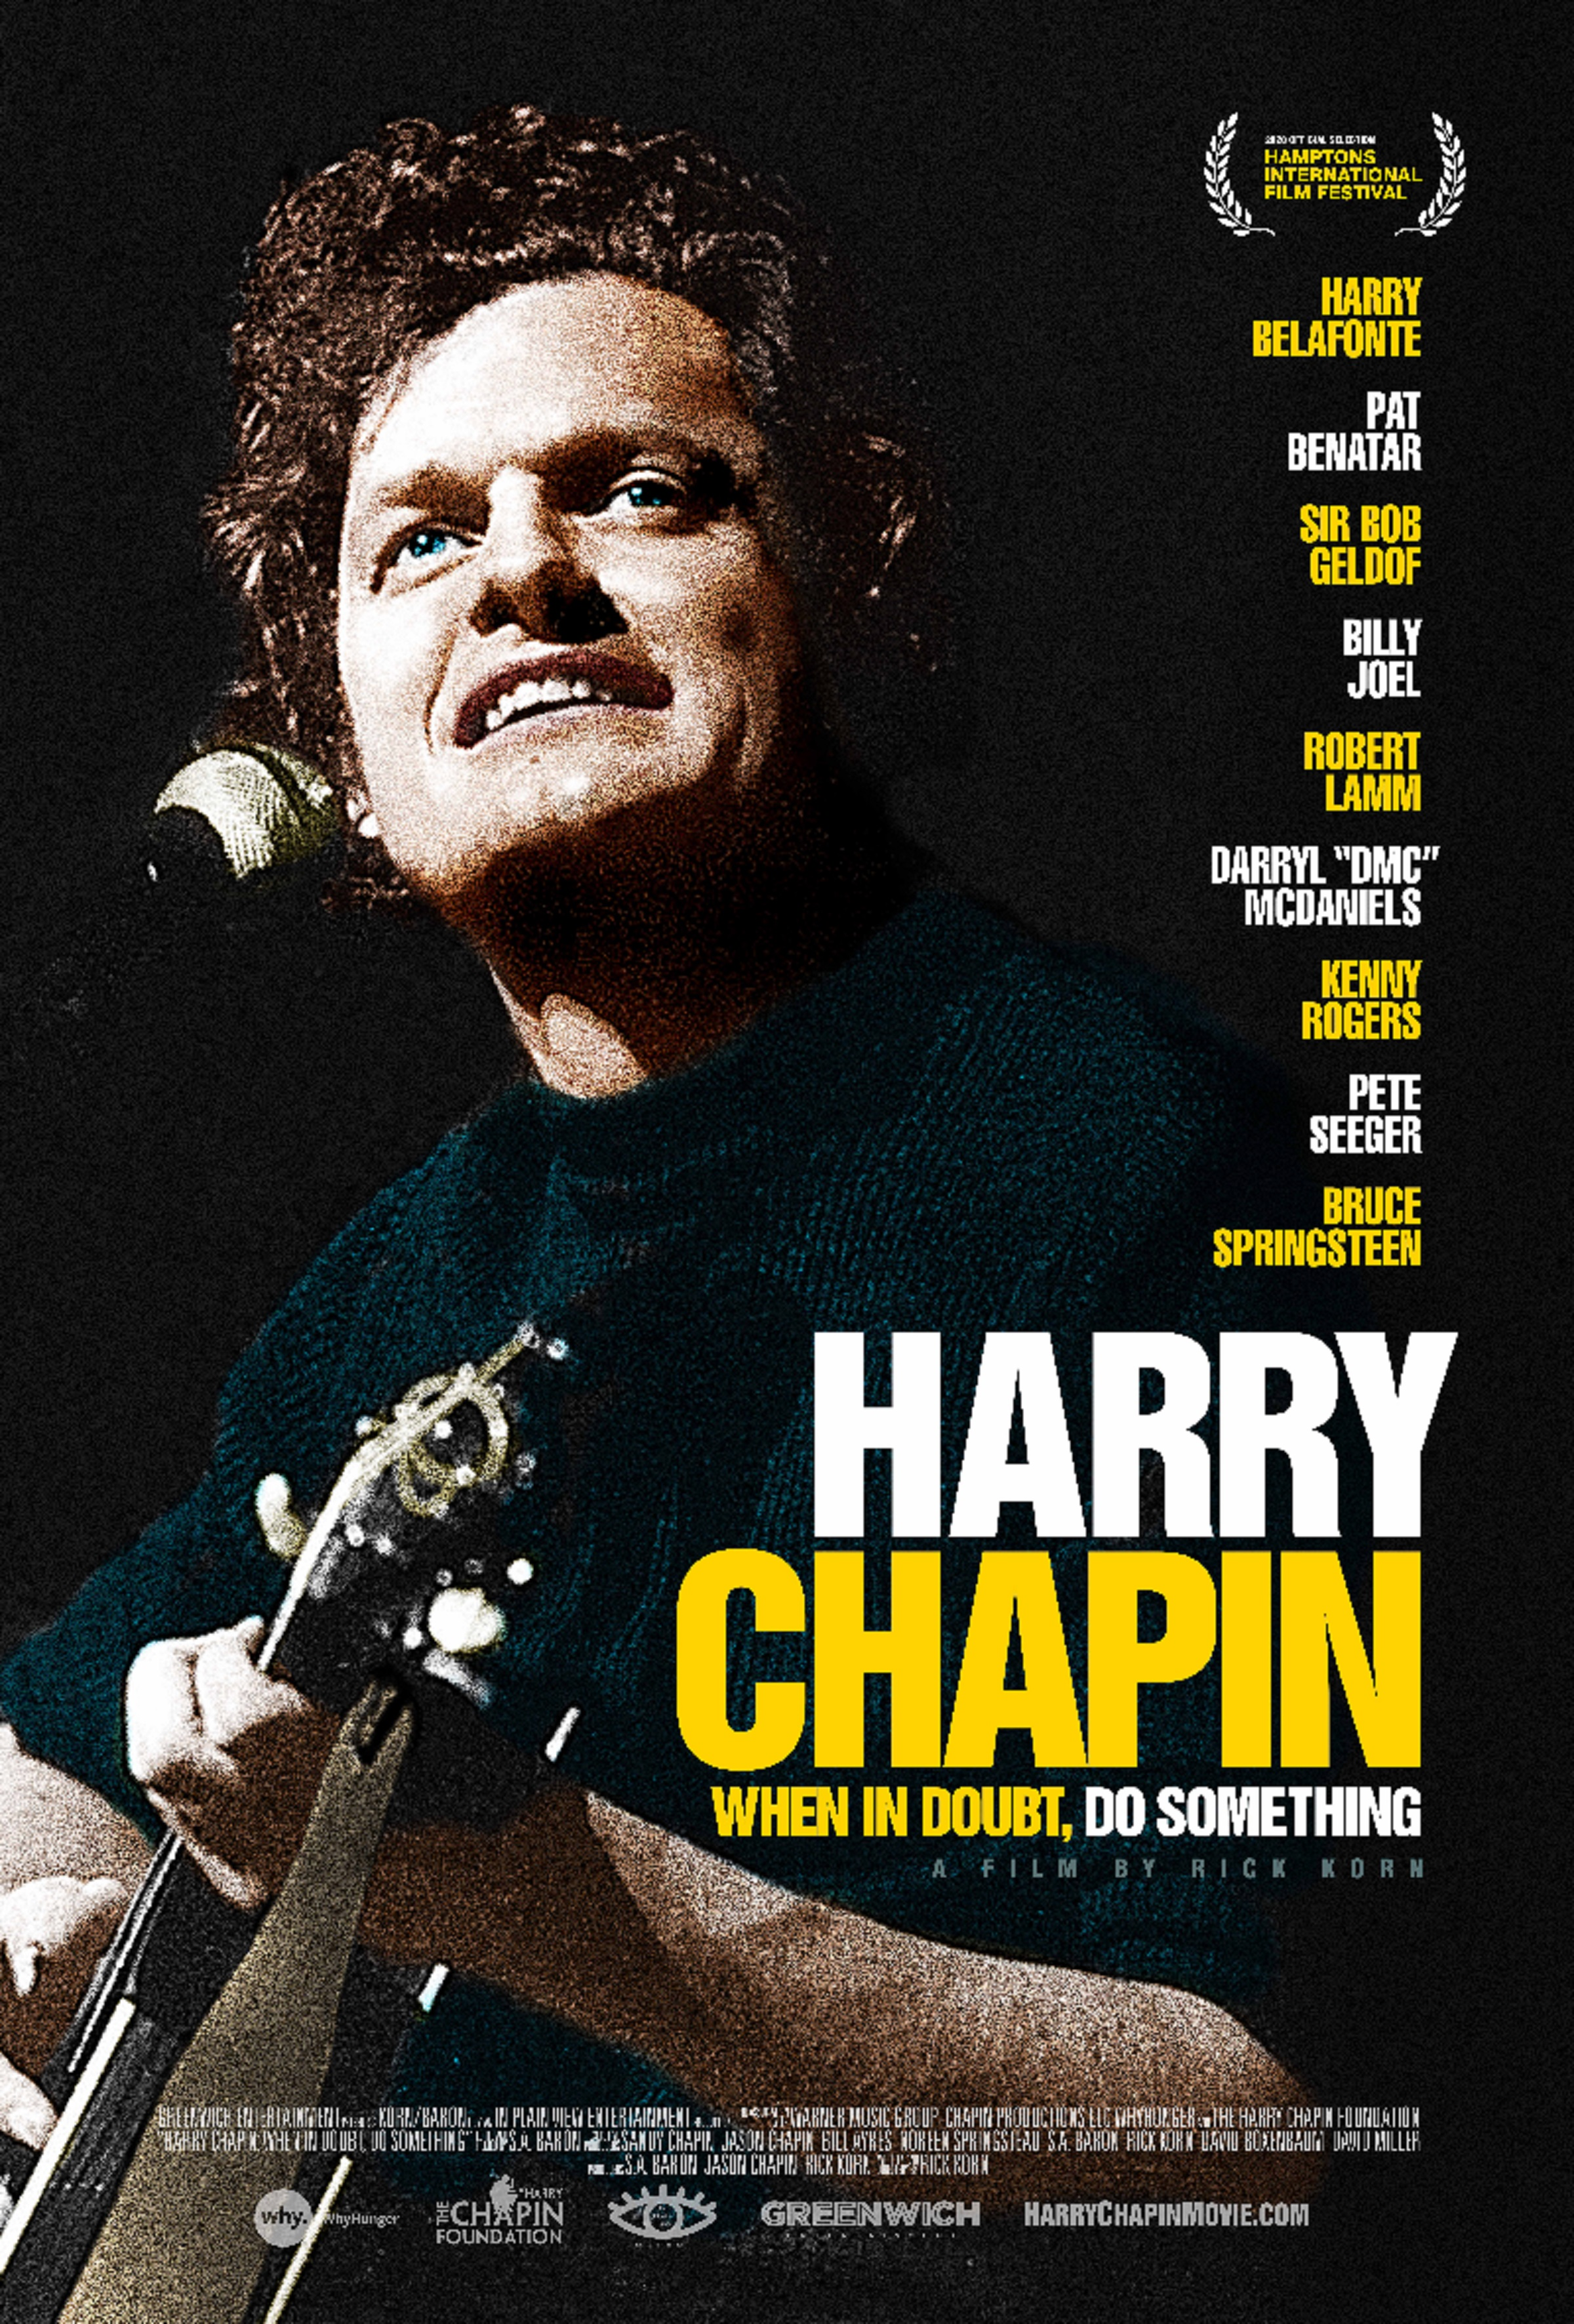 New Documentary 'Harry Chapin: When In Doubt, Do Something' Explores The Life, Music And Activism Of A Legendary Songwriter